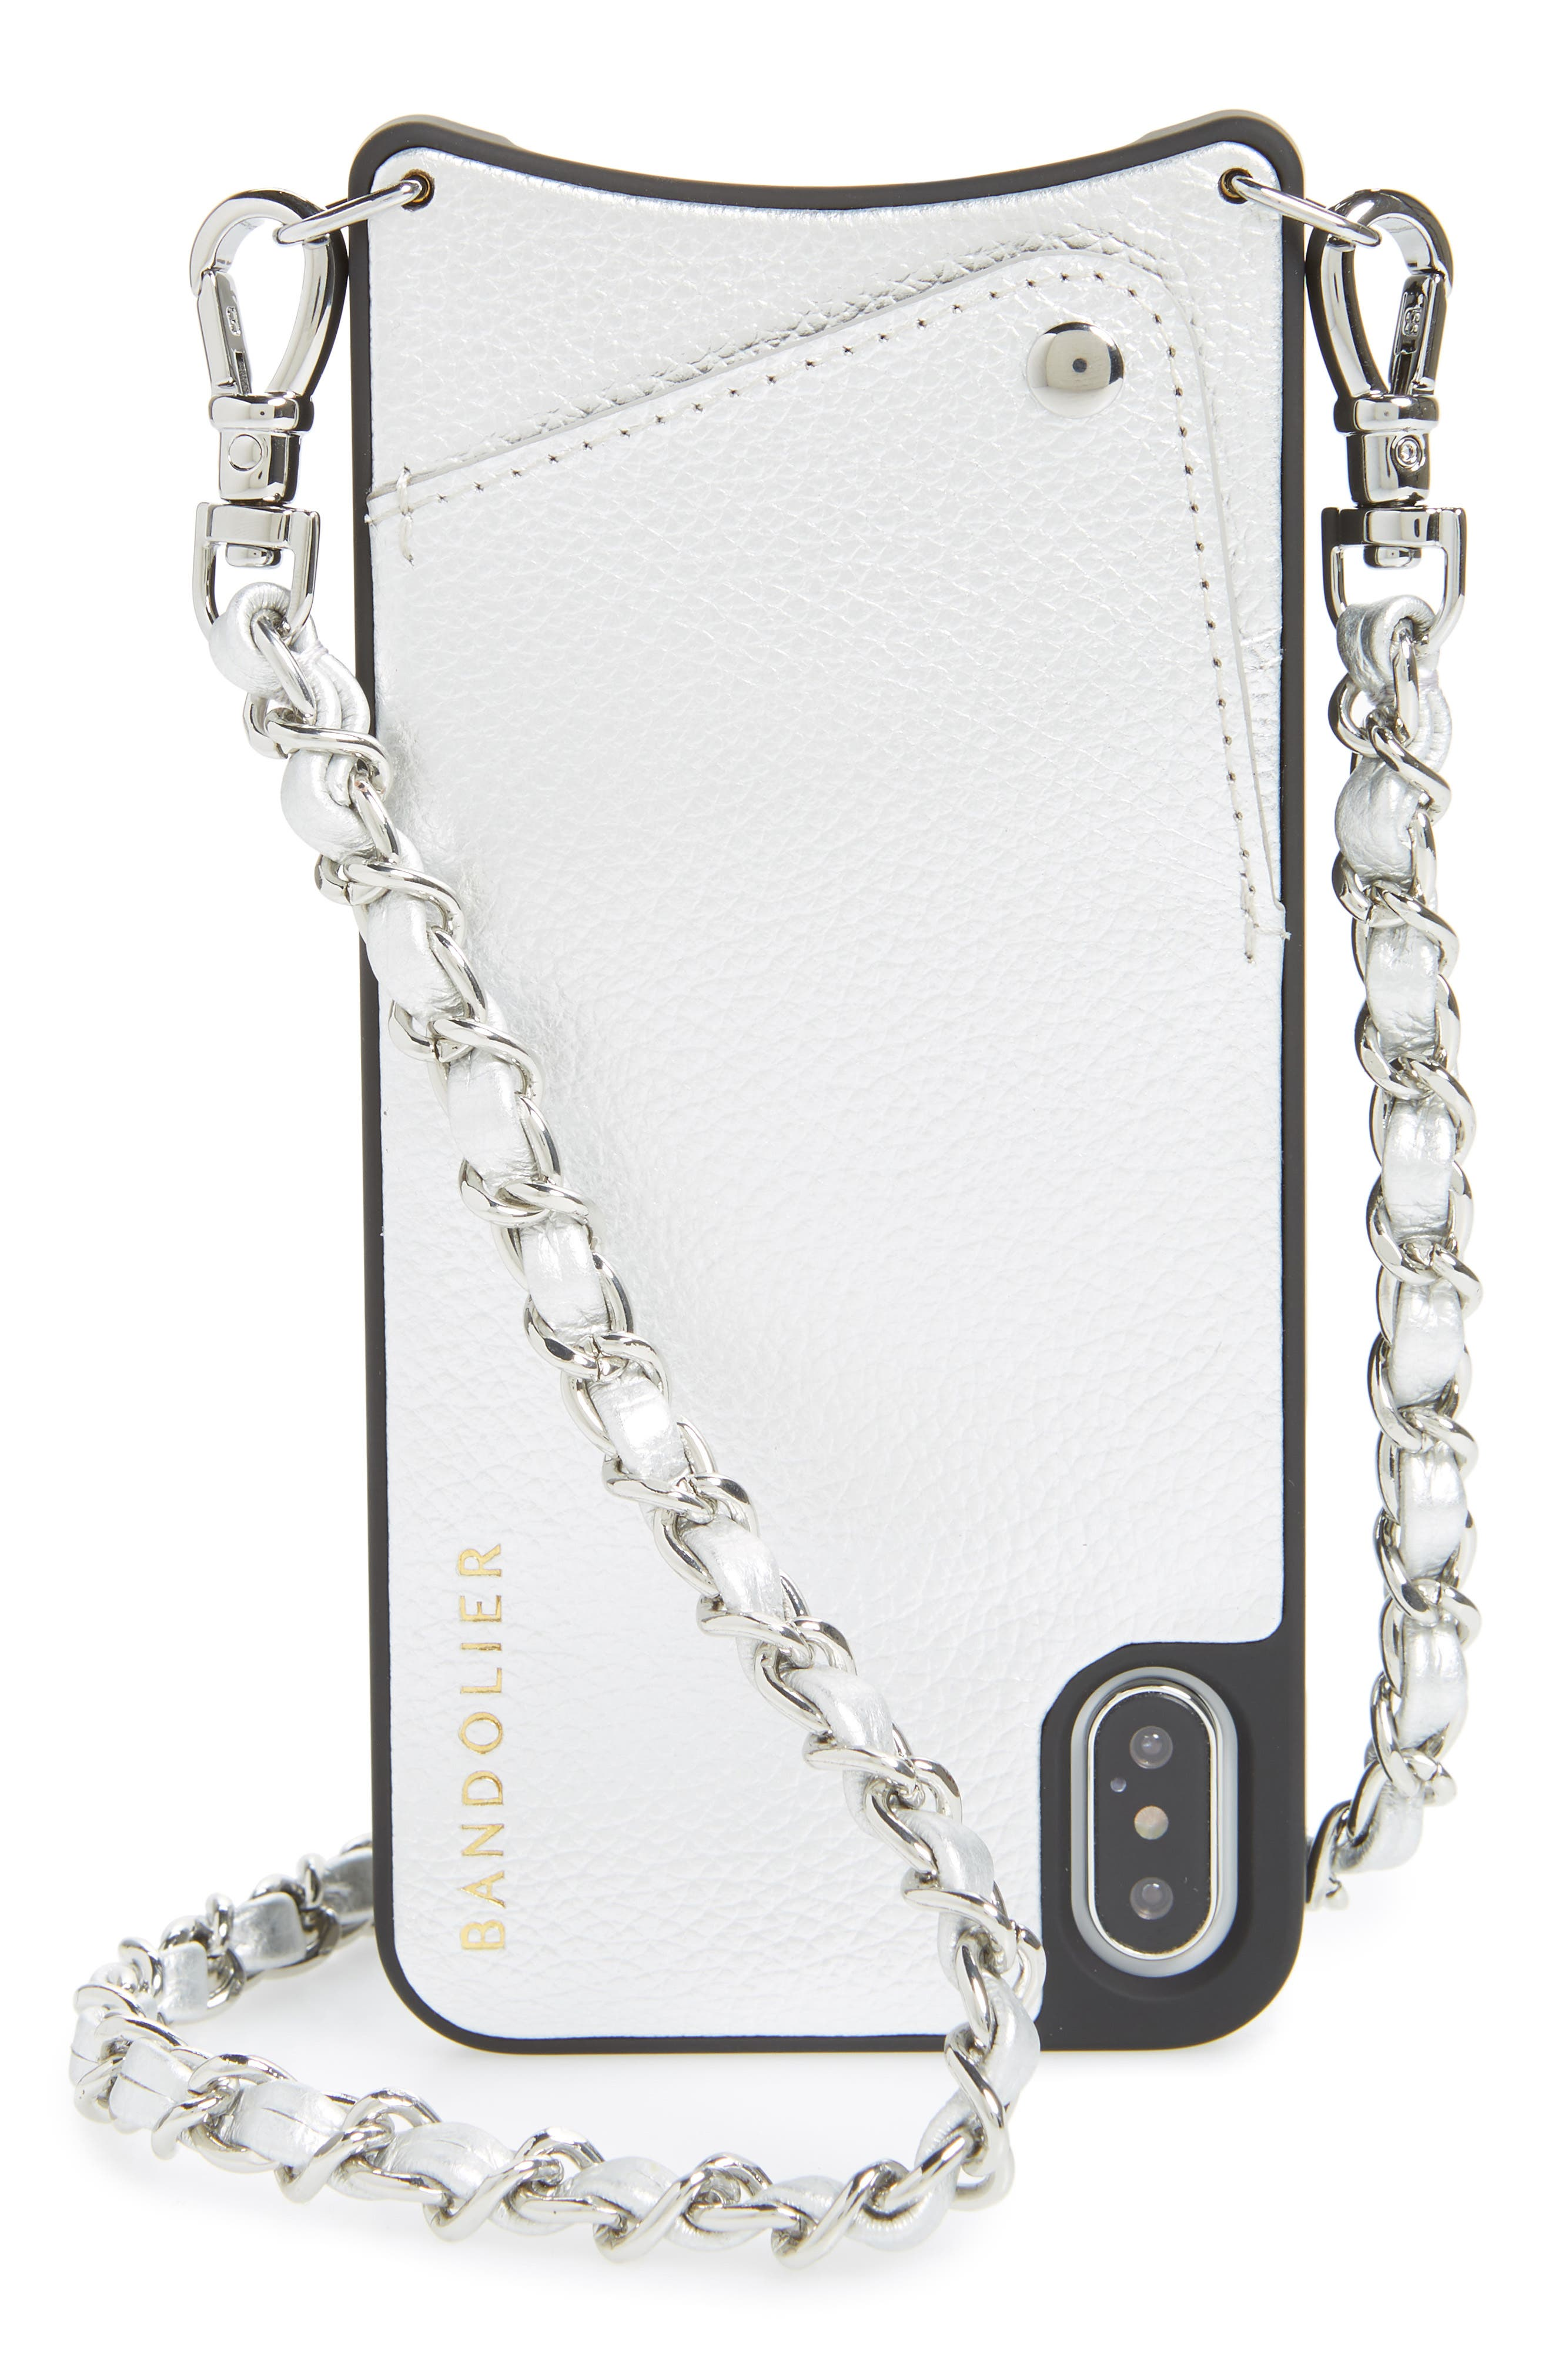 BANDOLIER Sarah Leather iPhone 8/8 Plus/X/Xs/Xs Max & XR Crossbody Case, Main, color, SILVER/ SILVER